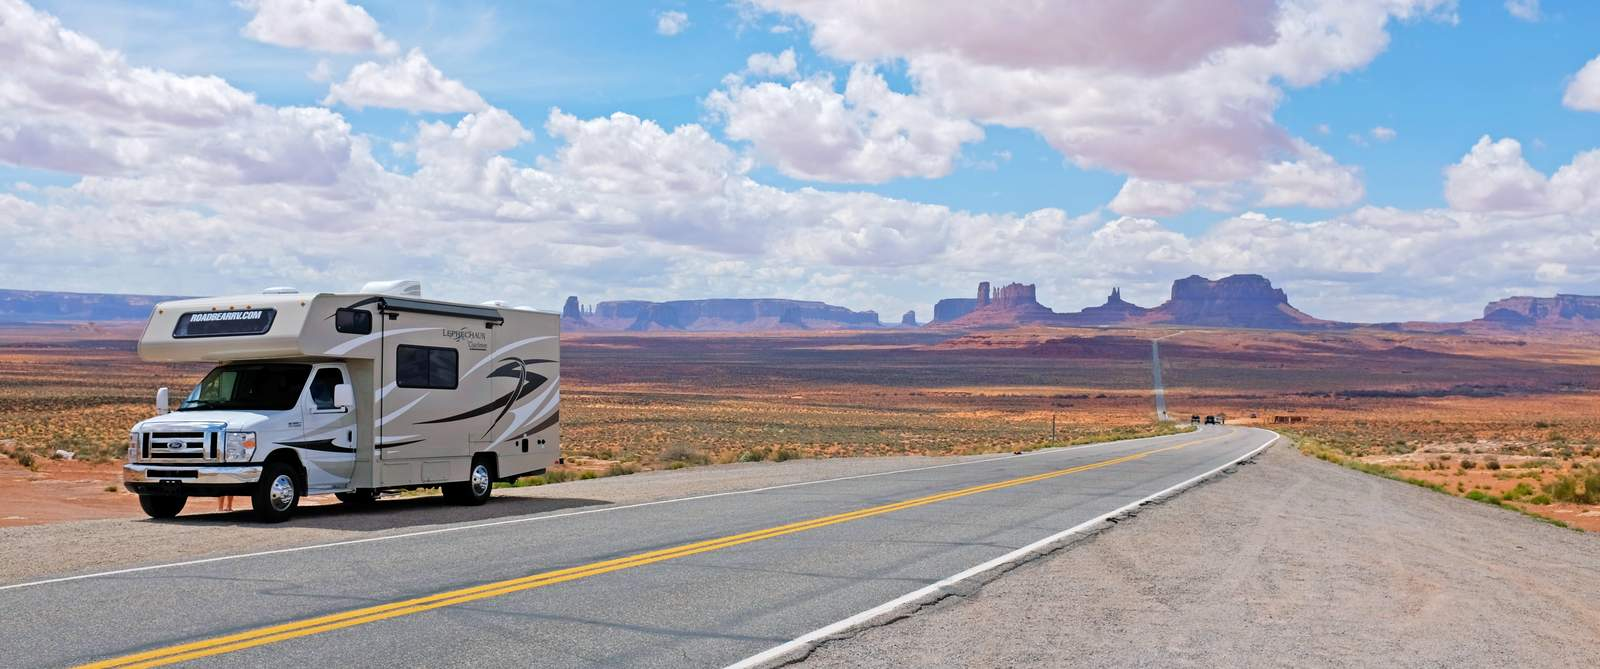 Cruise america t17 truck camper usa amp canada motorhome holidays - Wohnmobil Im Monument Valley